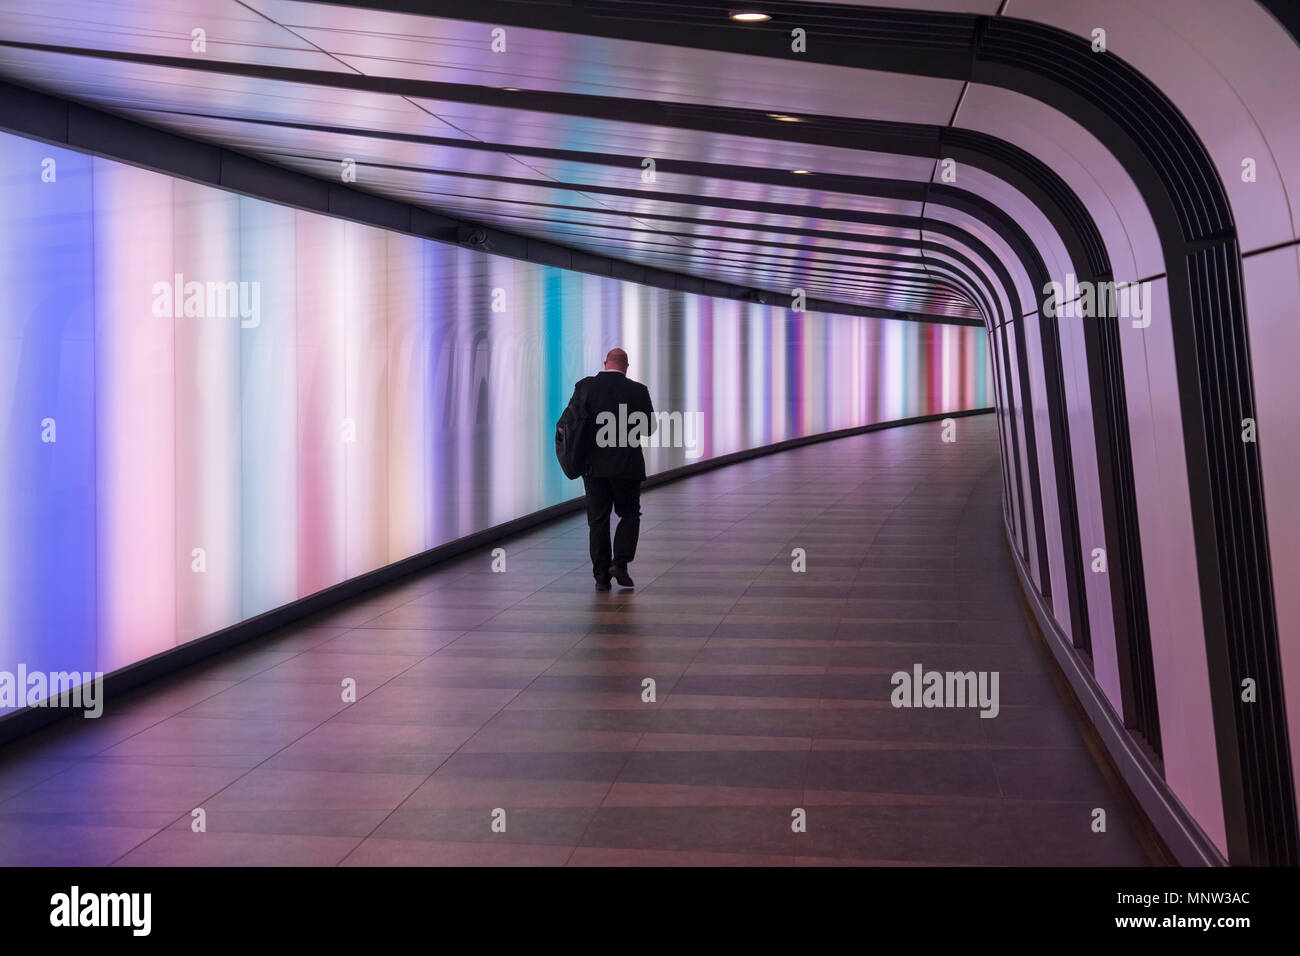 King's Cross Station Lightwall Tunnel, King's Cross Station, London, England, UK - Stock Image